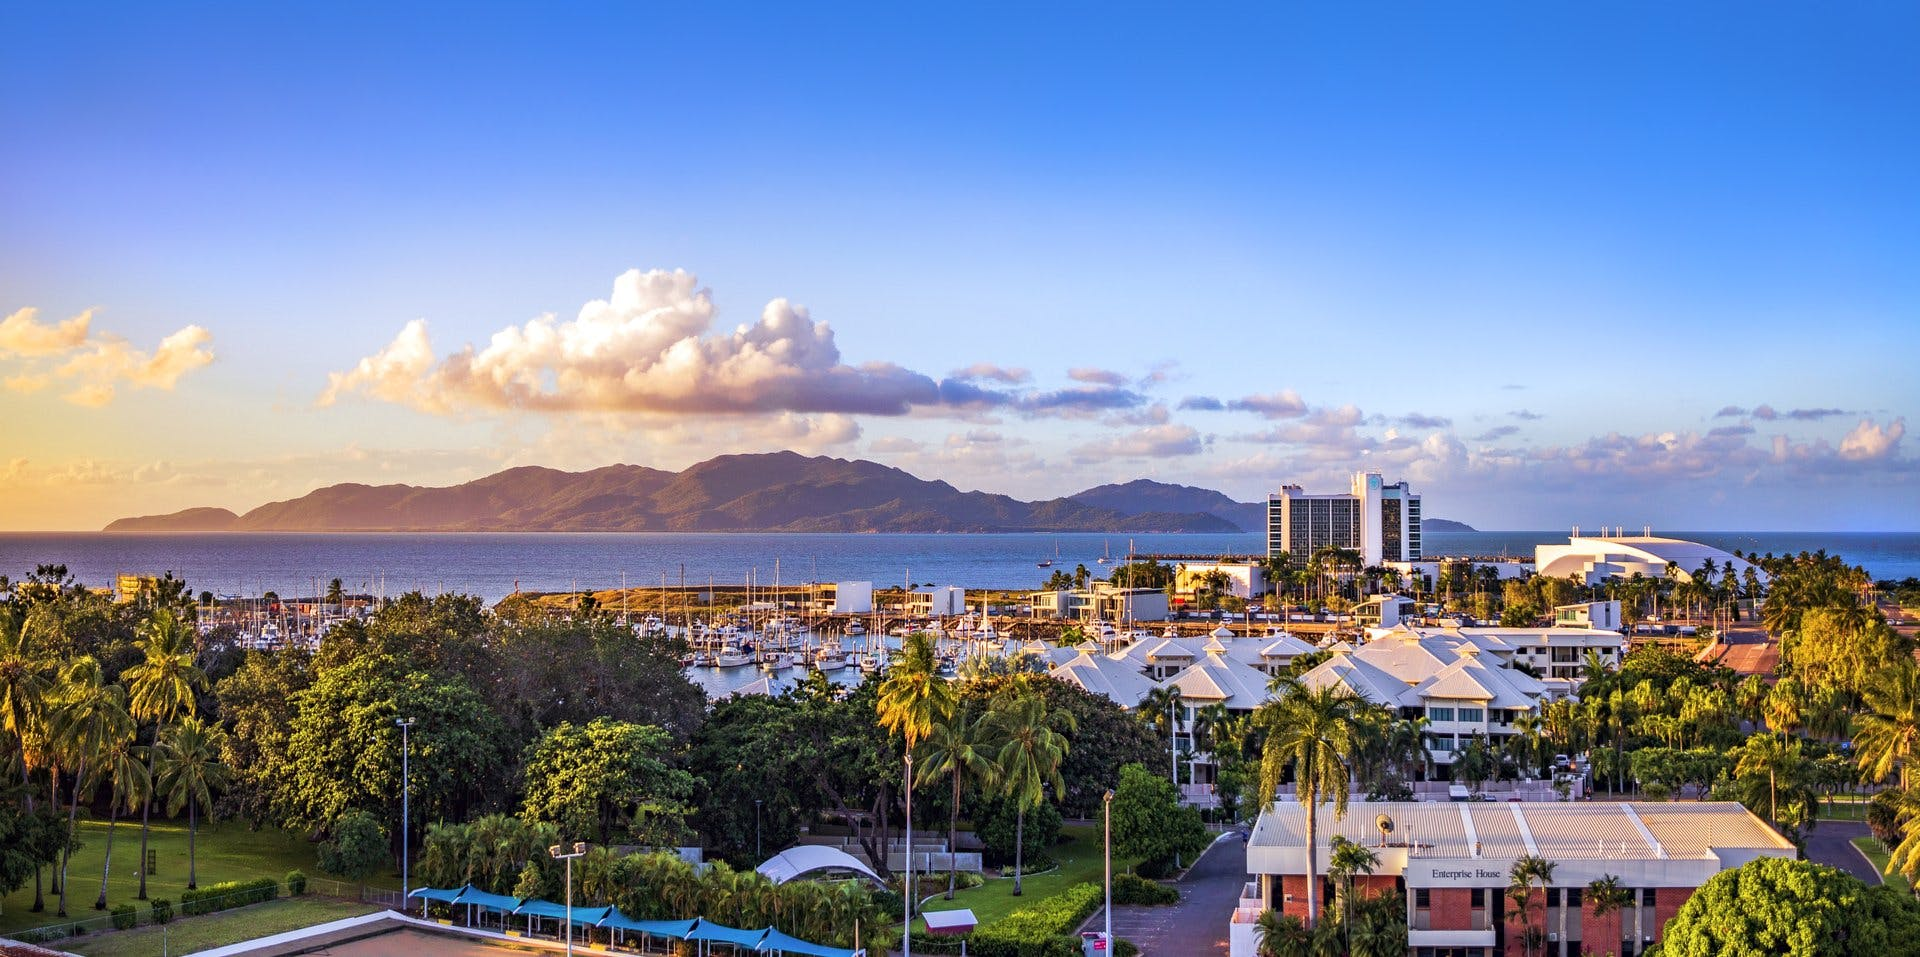 ITU Multisport Championships Schedule Announced for Townsville 2021